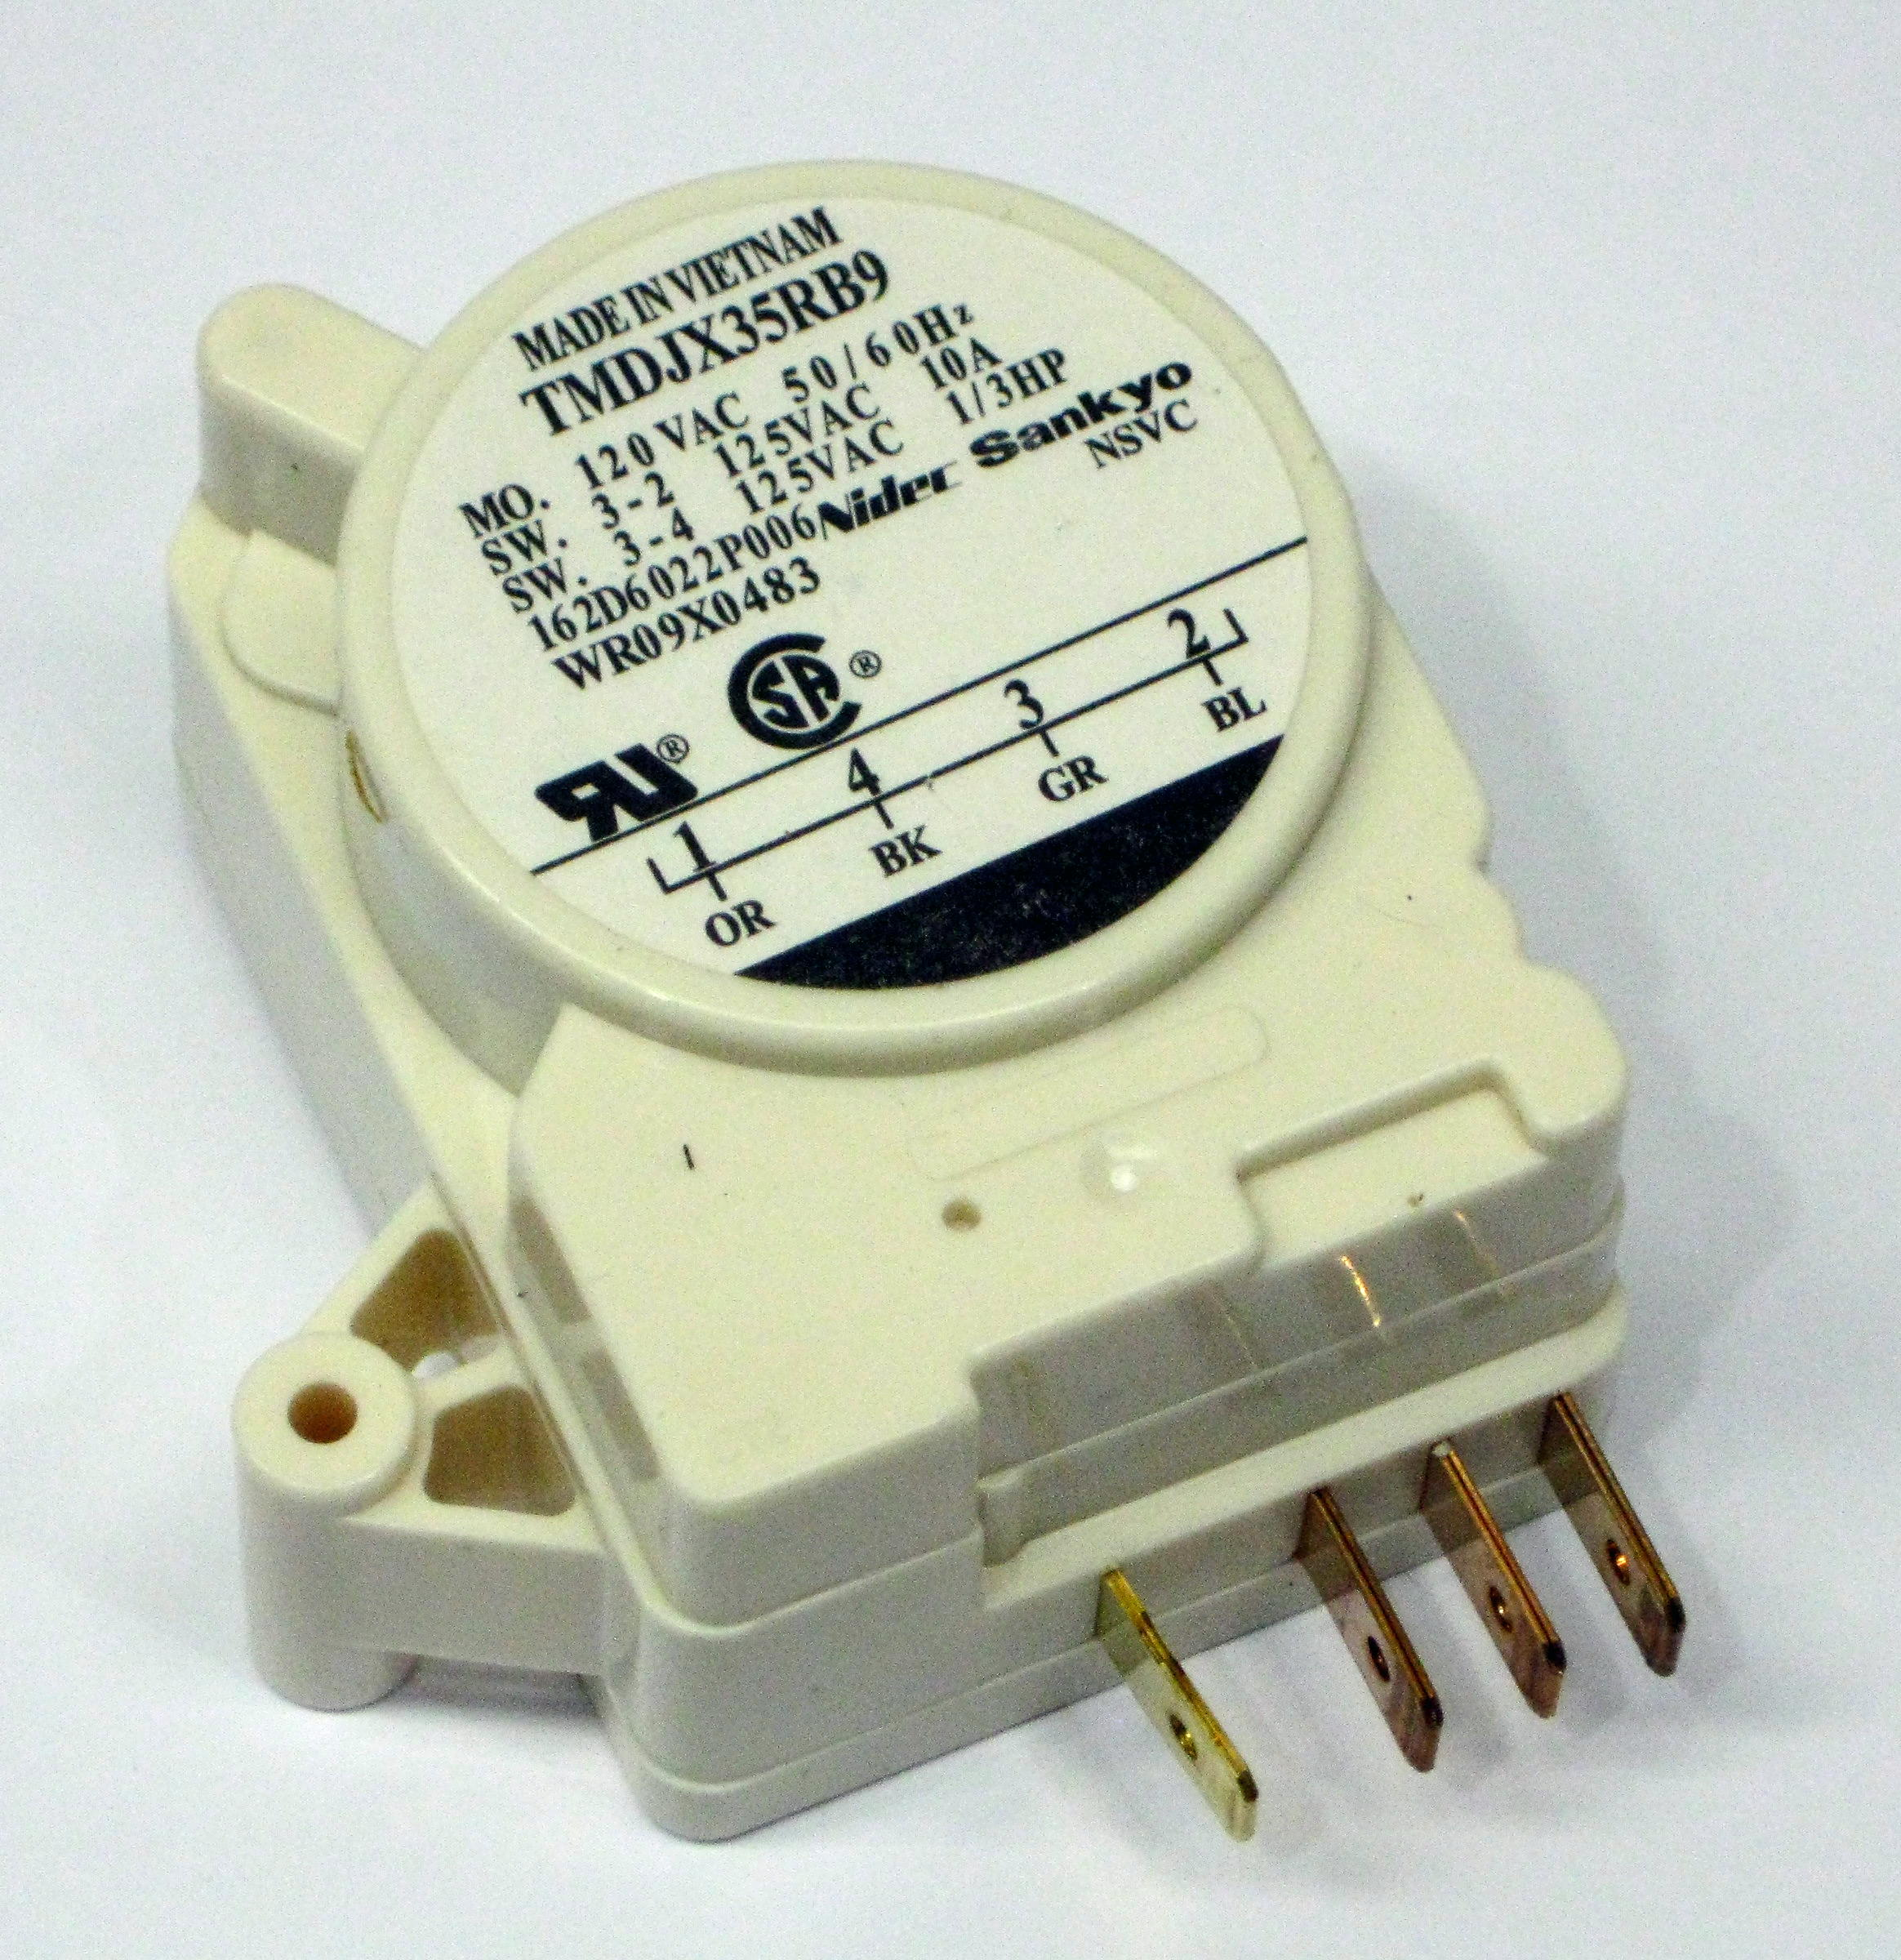 Refrigerator Defrost Timer Control WR9X483 for GE 162D6022P6 AP2061693 PS310852